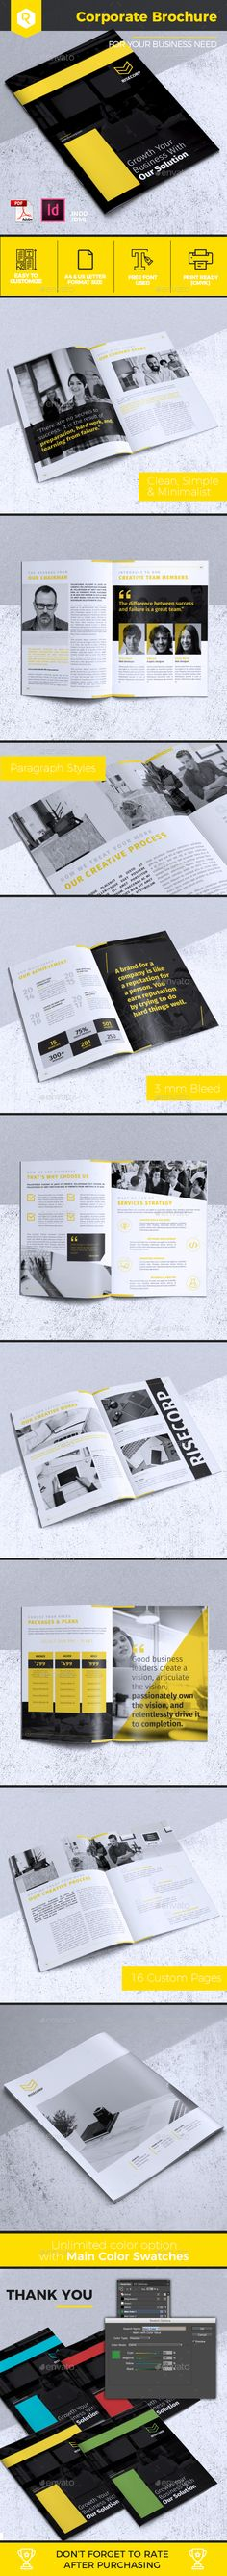 Creative Corporate Brochure Template InDesign INDD - 16 Custom Pages, A4 and US Letter